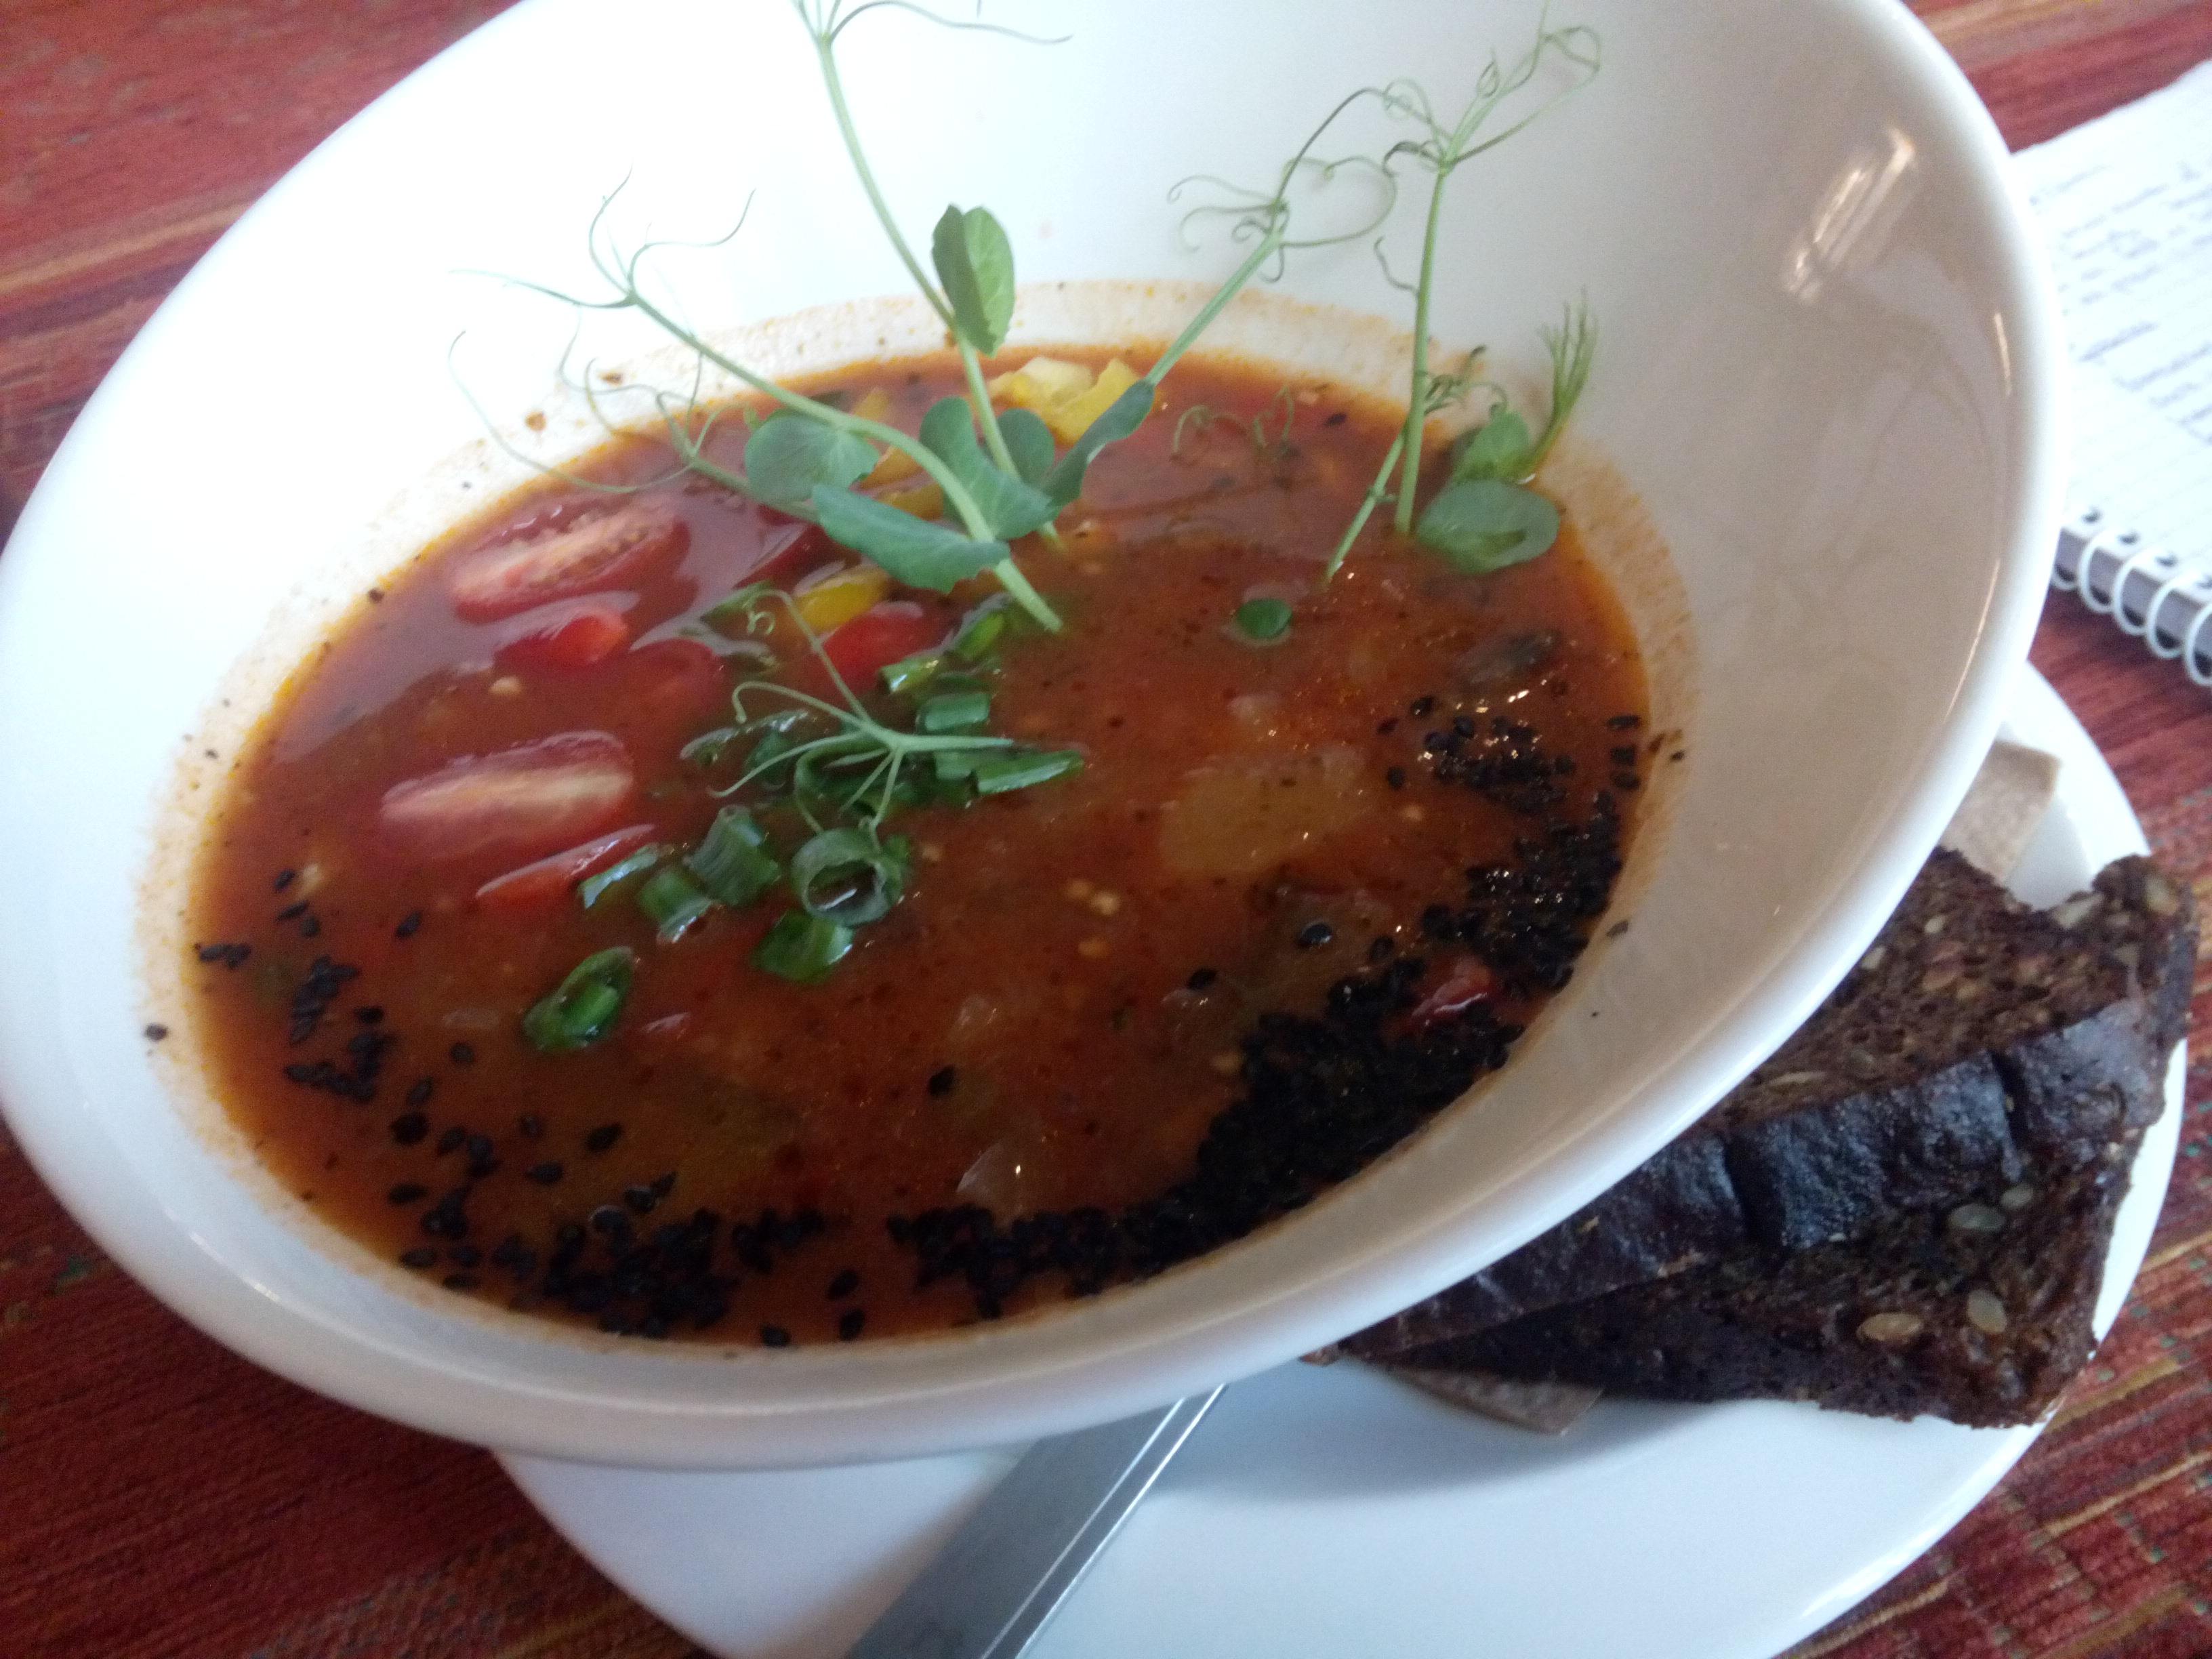 A white bowl with red soup and green garnish, with black bread on the side